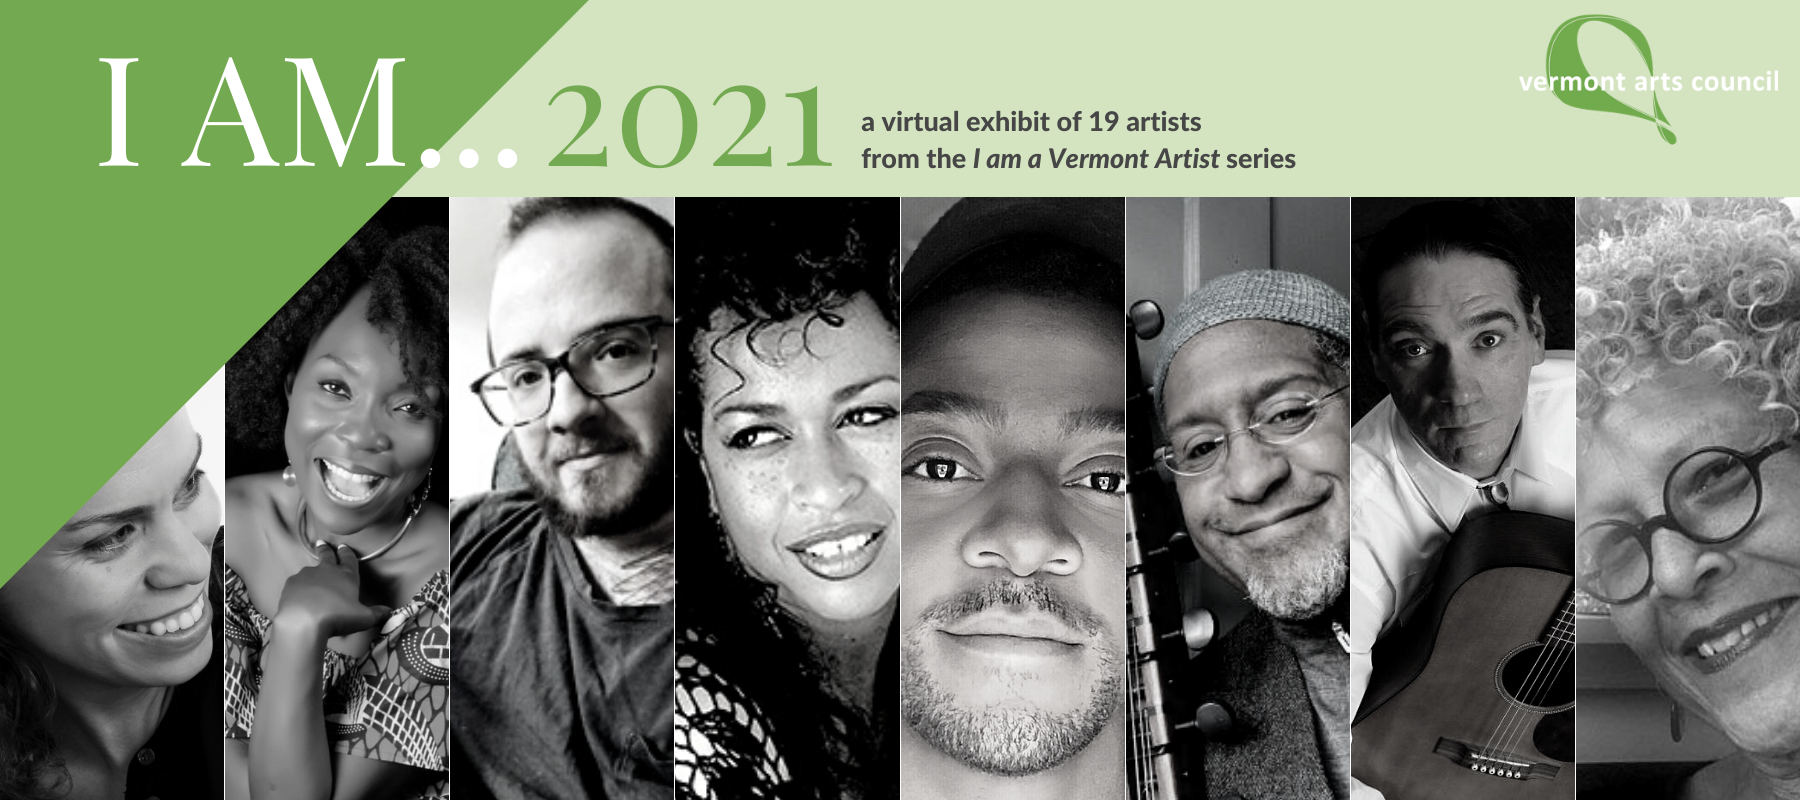 8 of 19 artists featured in the I AM... 2021 virtual exhibit